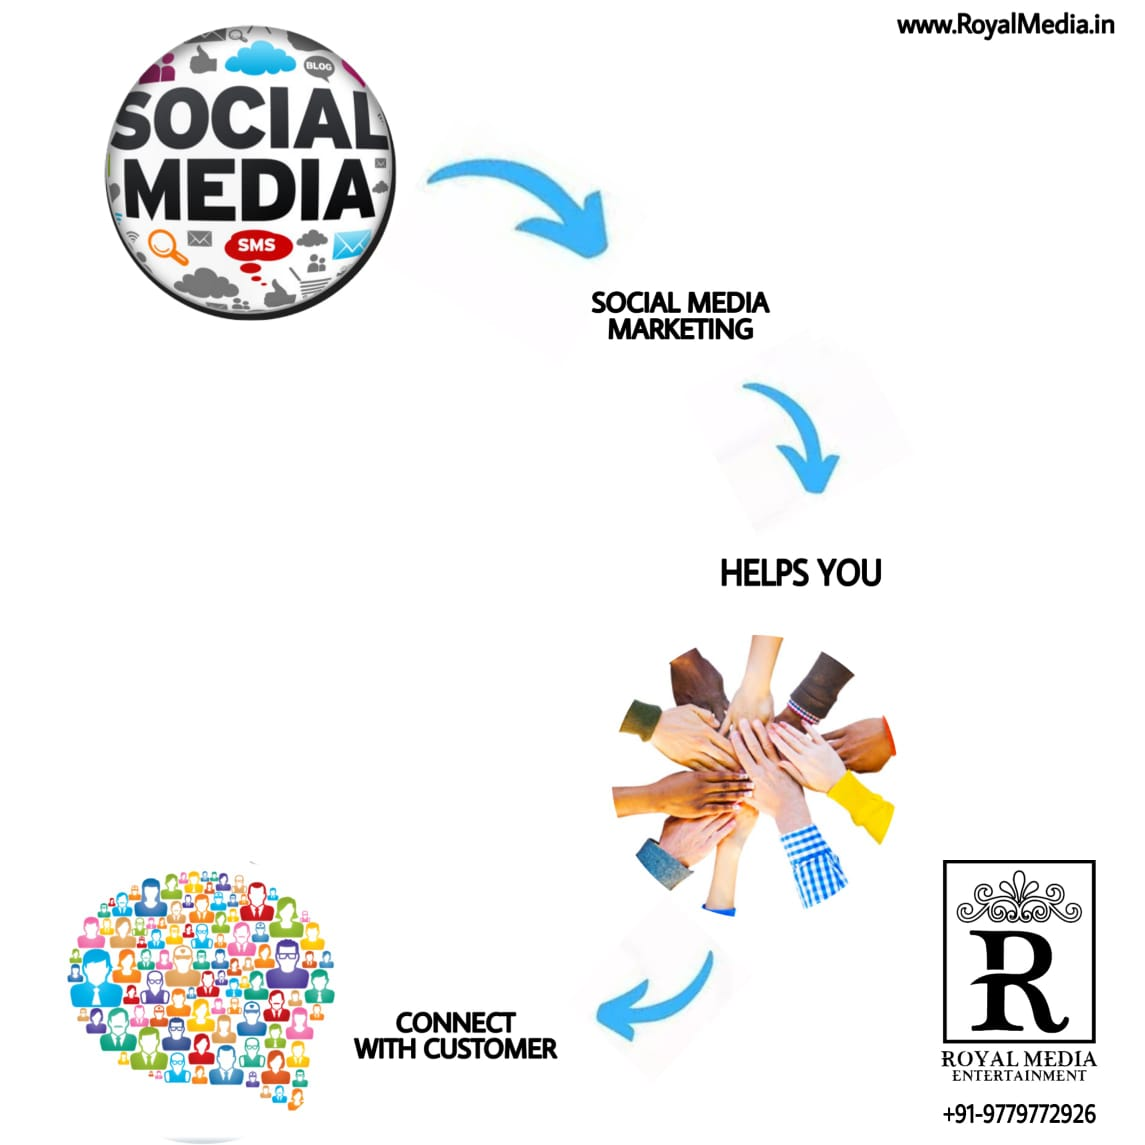 Connecting to your Customers Through Social Media Marketing